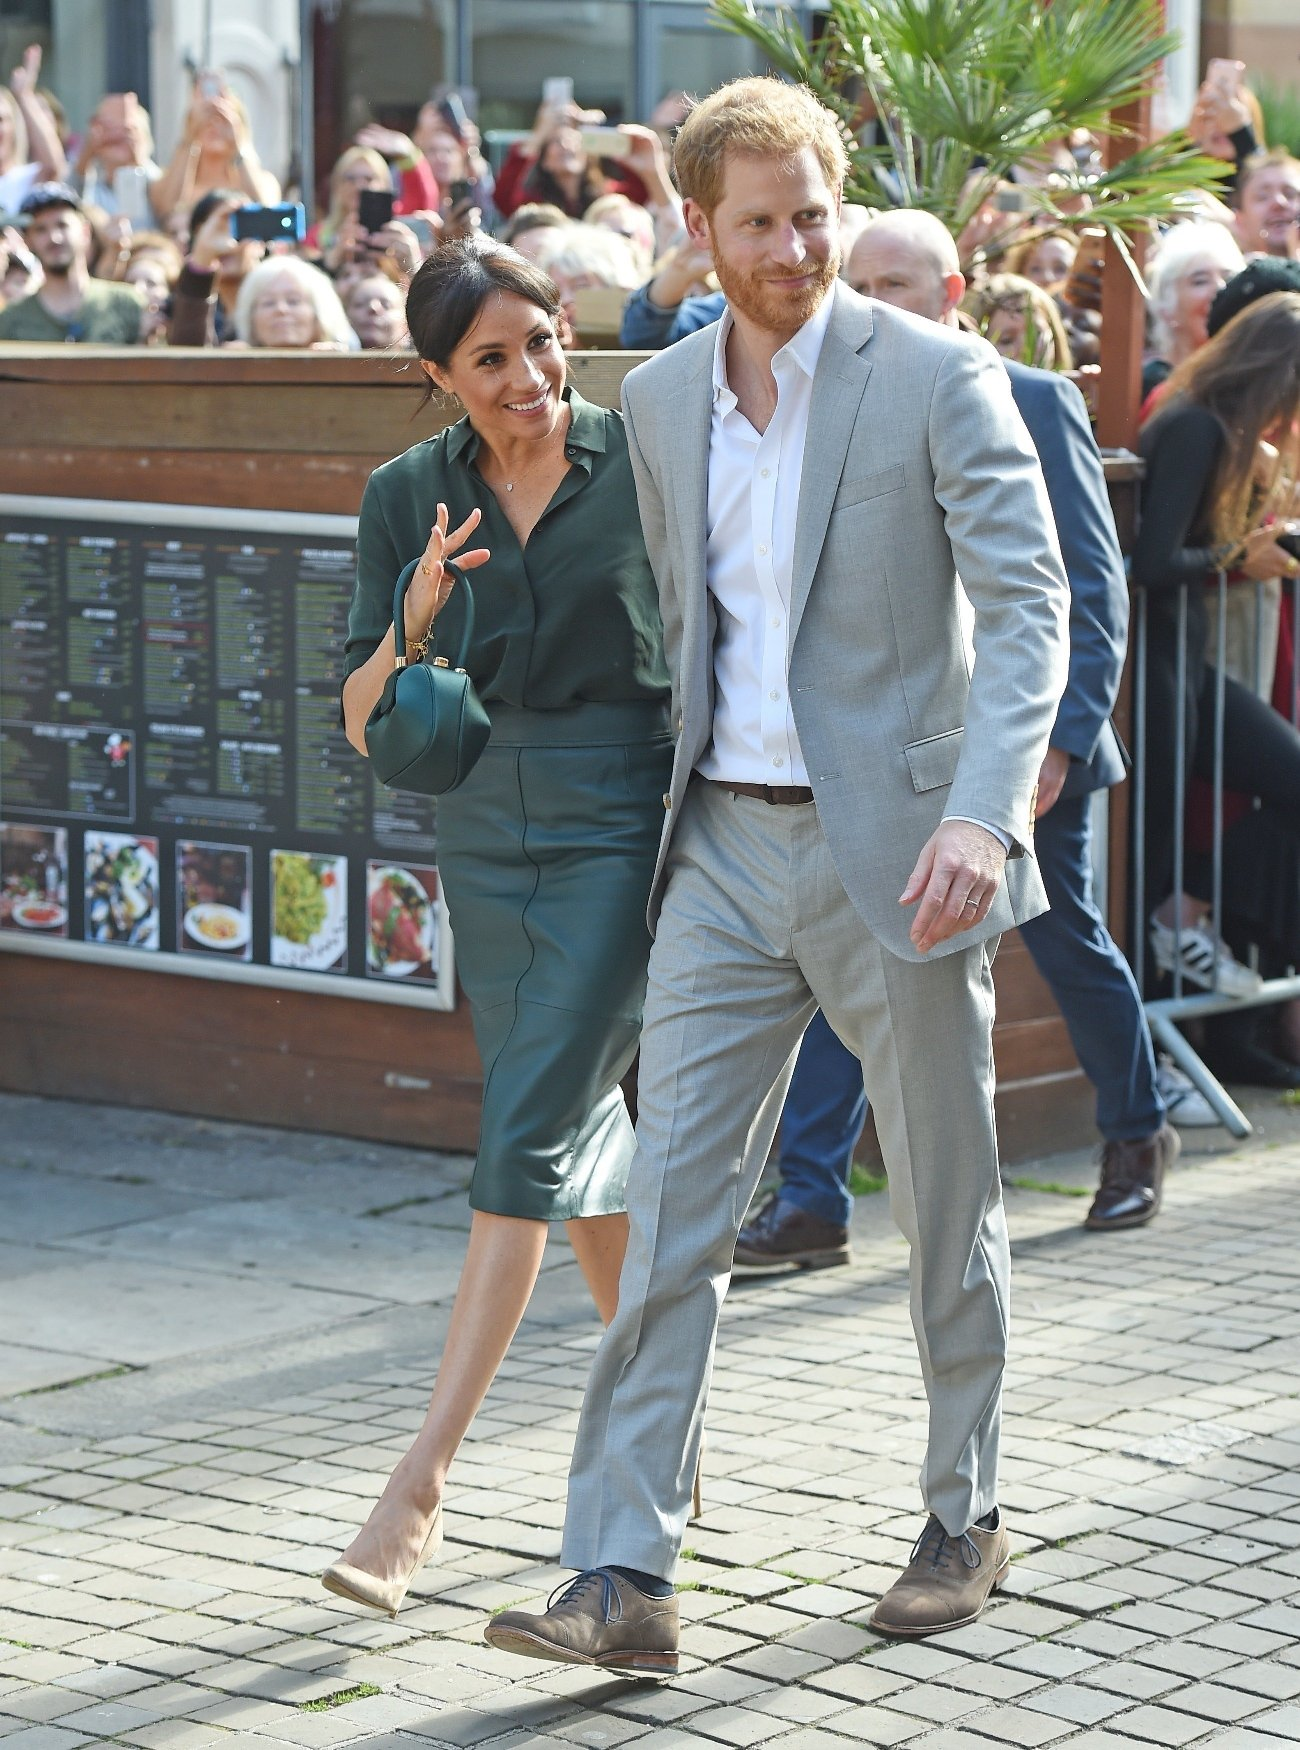 BGUK_1357802 - London, UNITED KINGDOM  -   Prince Harry, Duke of Sussex and Meghan, Duchess of Sussex seen in Brighton on their tour of Sussex.  Pictured: Prince Harry, Duke of Sussex and Meghan, Duchess of Sussex  BACKGRID UK 3 OCTOBER 2018, Image: 389636056, License: Rights-managed, Restrictions: , Model Release: no, Credit line: Profimedia, Xposurephotos